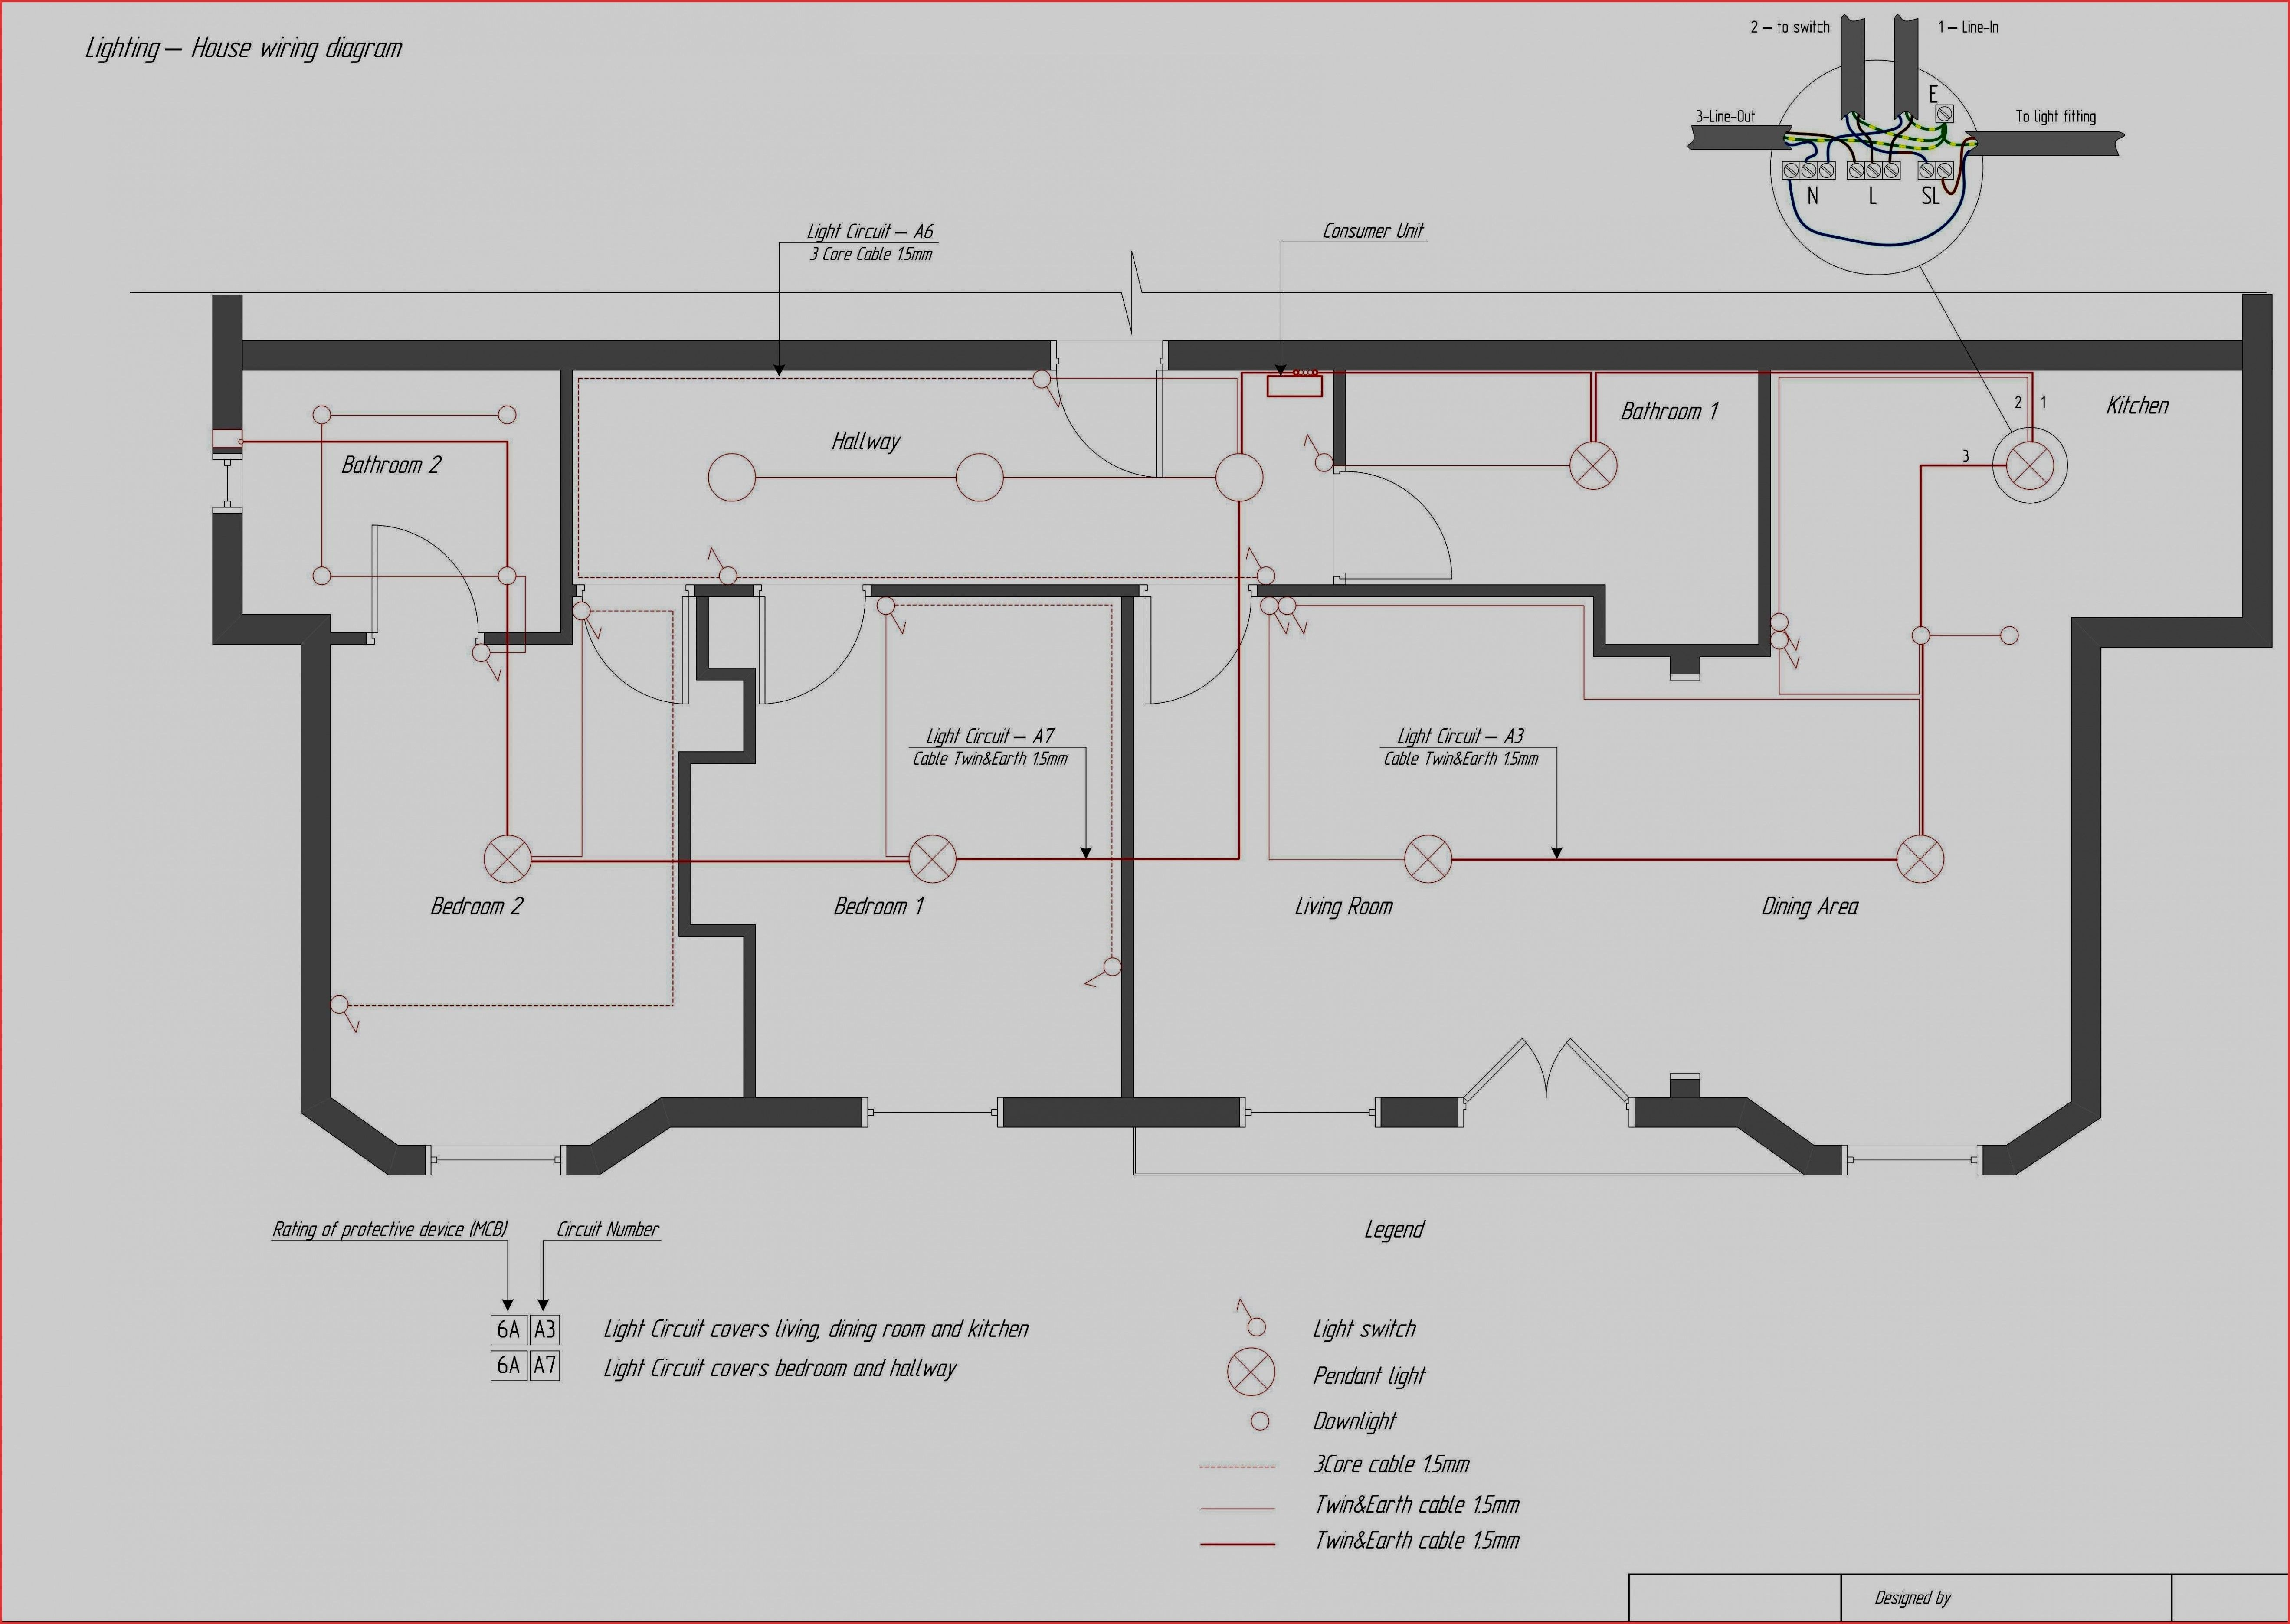 New Bmw F20 Audio Wiring Diagram House Wiring Electrical Circuit Diagram Electrical Wiring Diagram